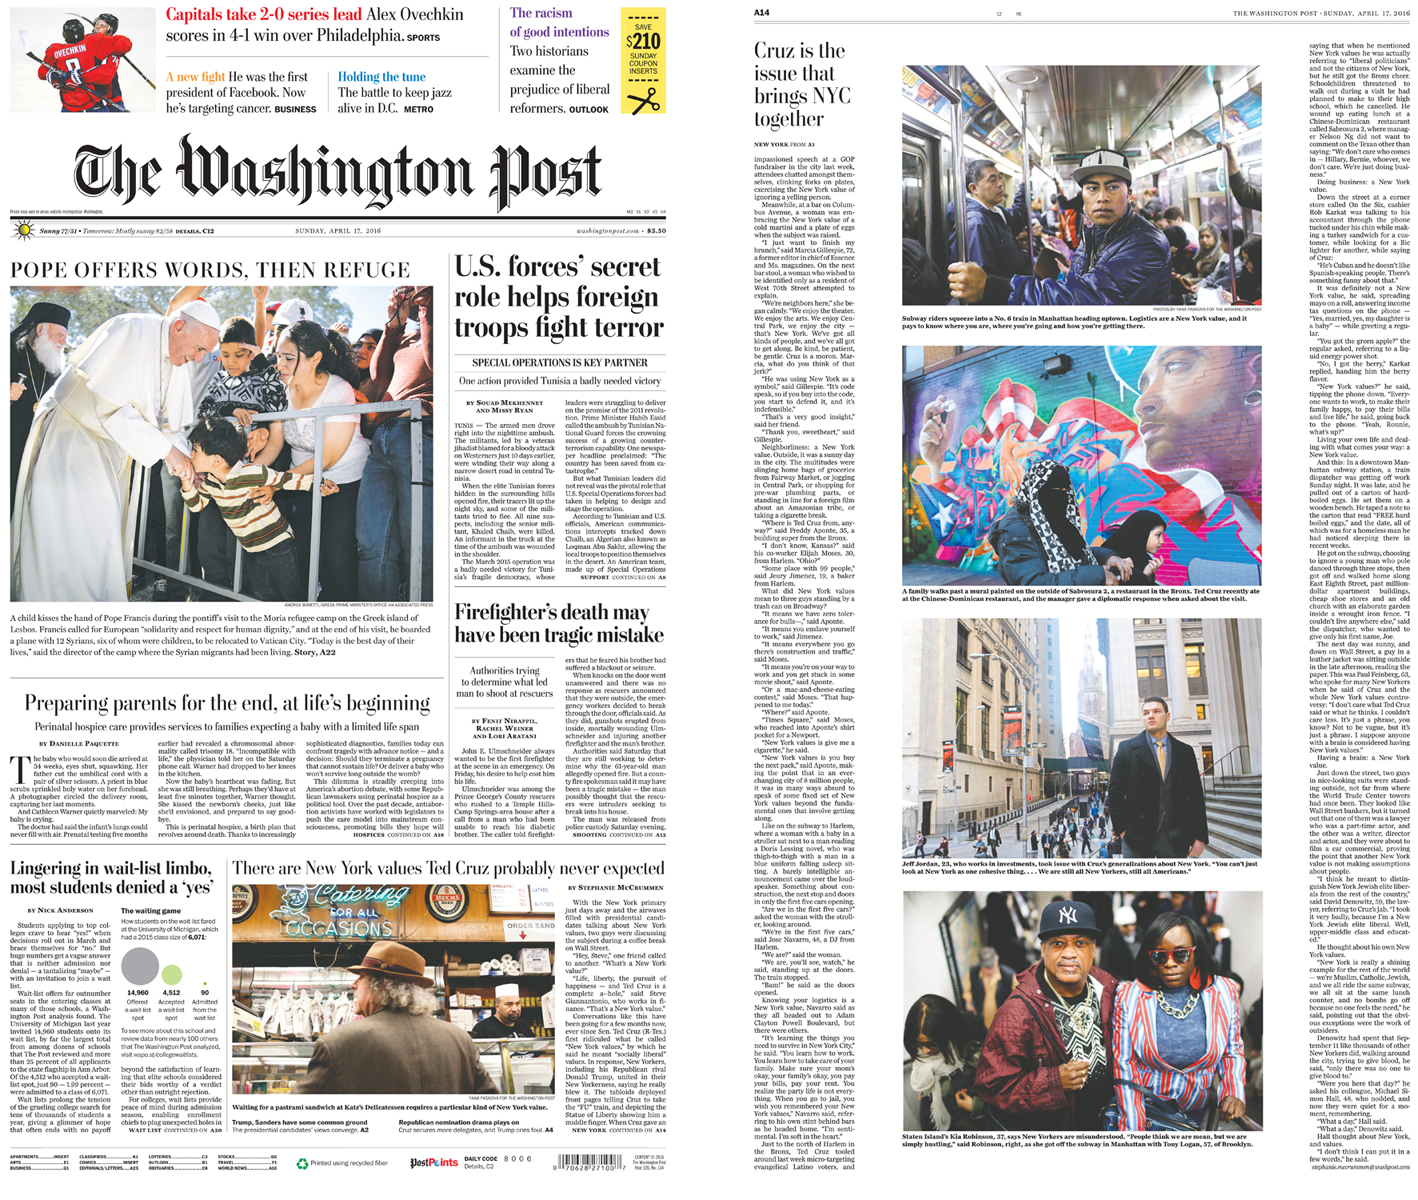 (L-R) Washington Post front page (bottom photo) + inside spread